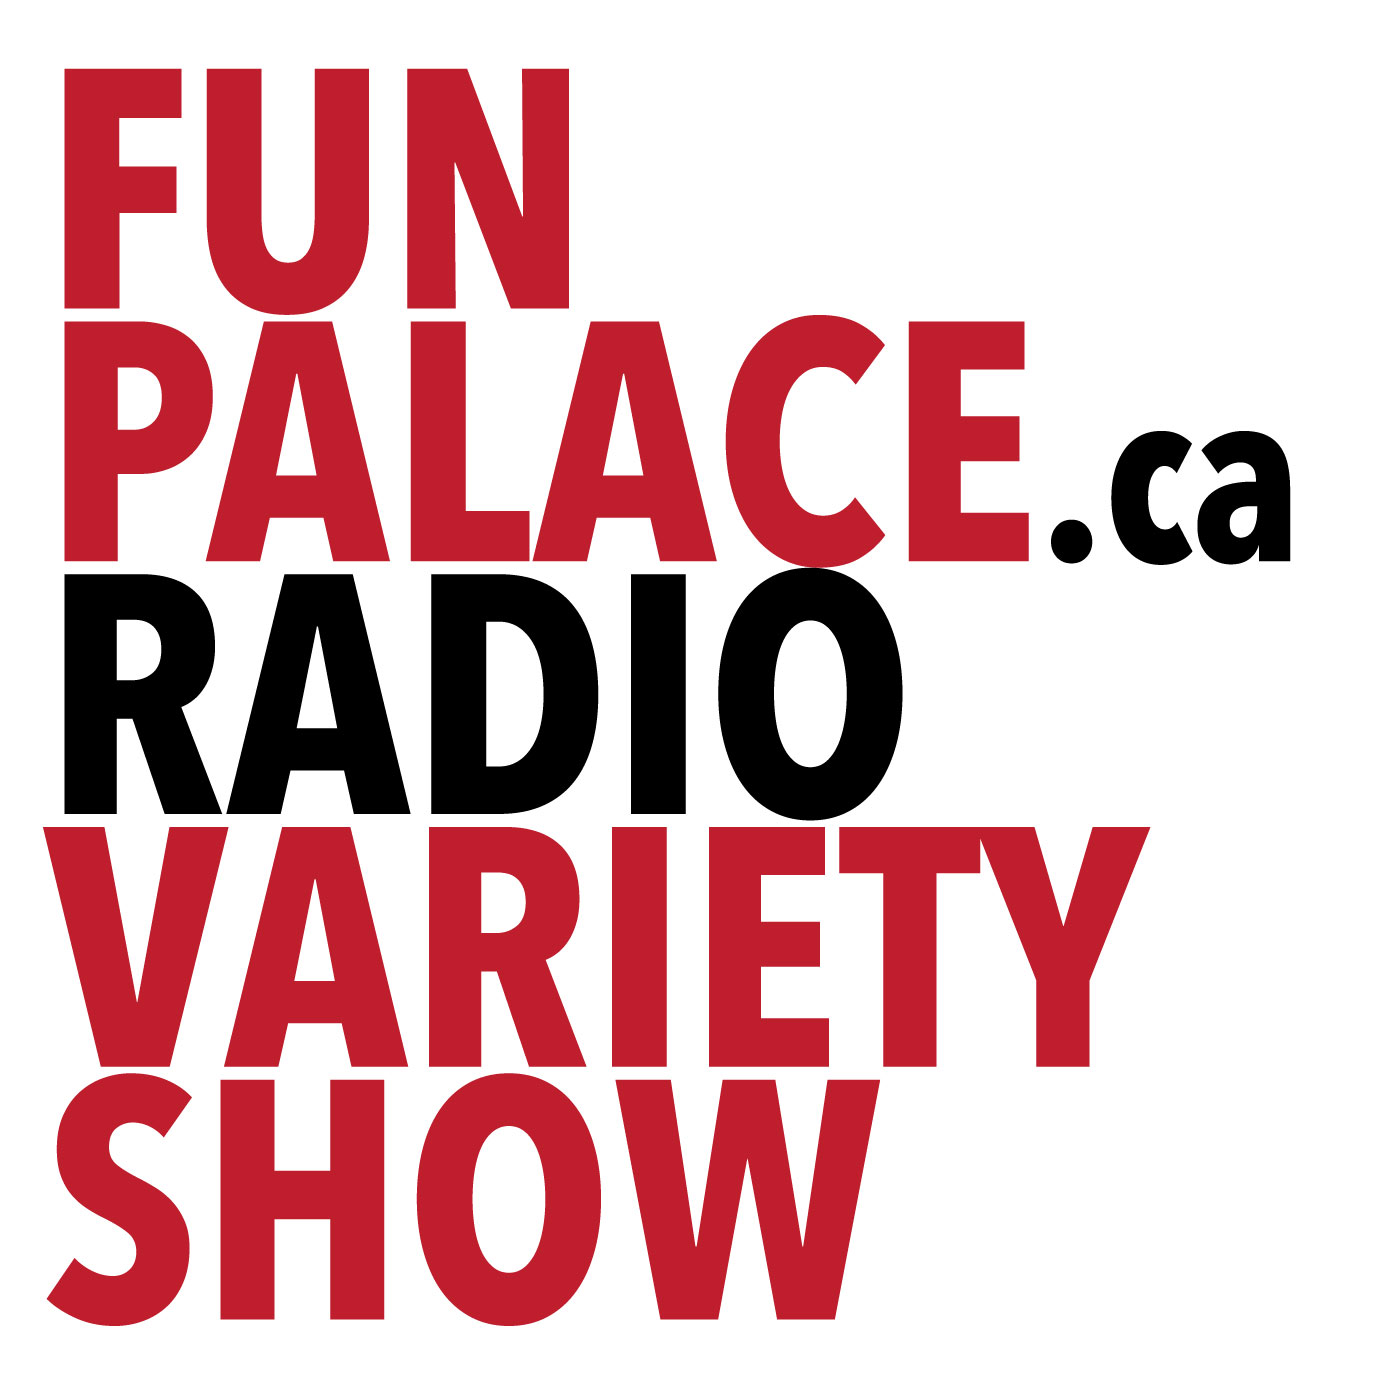 Fun Palace Radio Variety Show